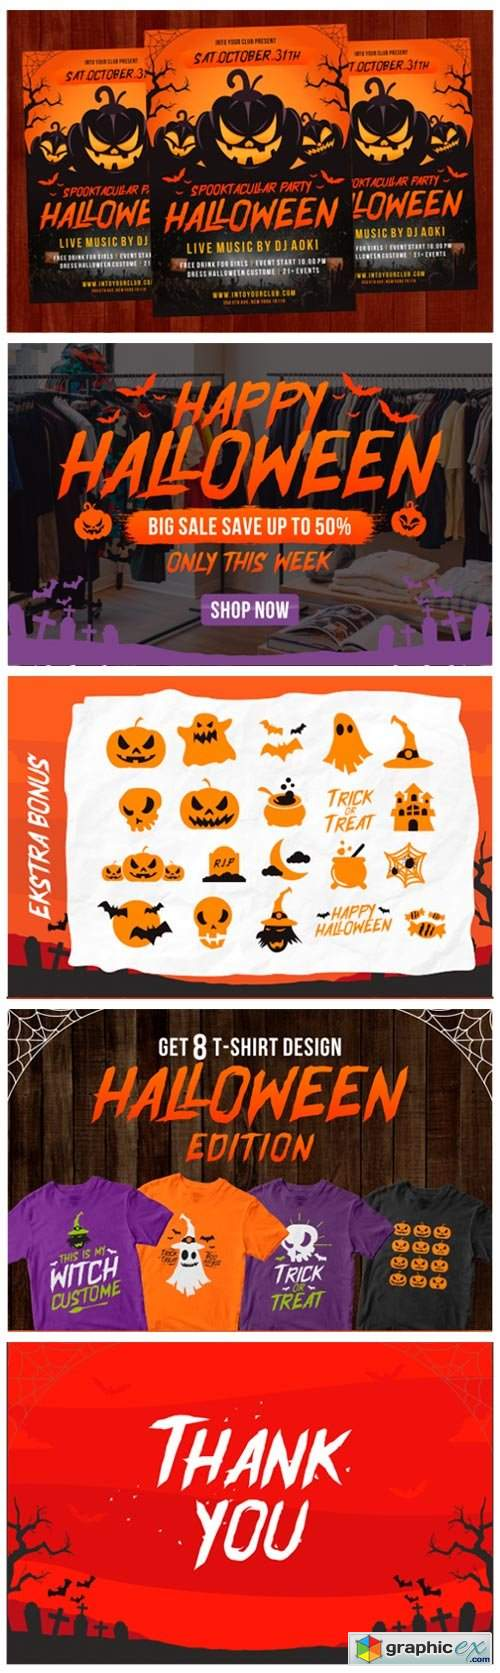 Halloween Night Font